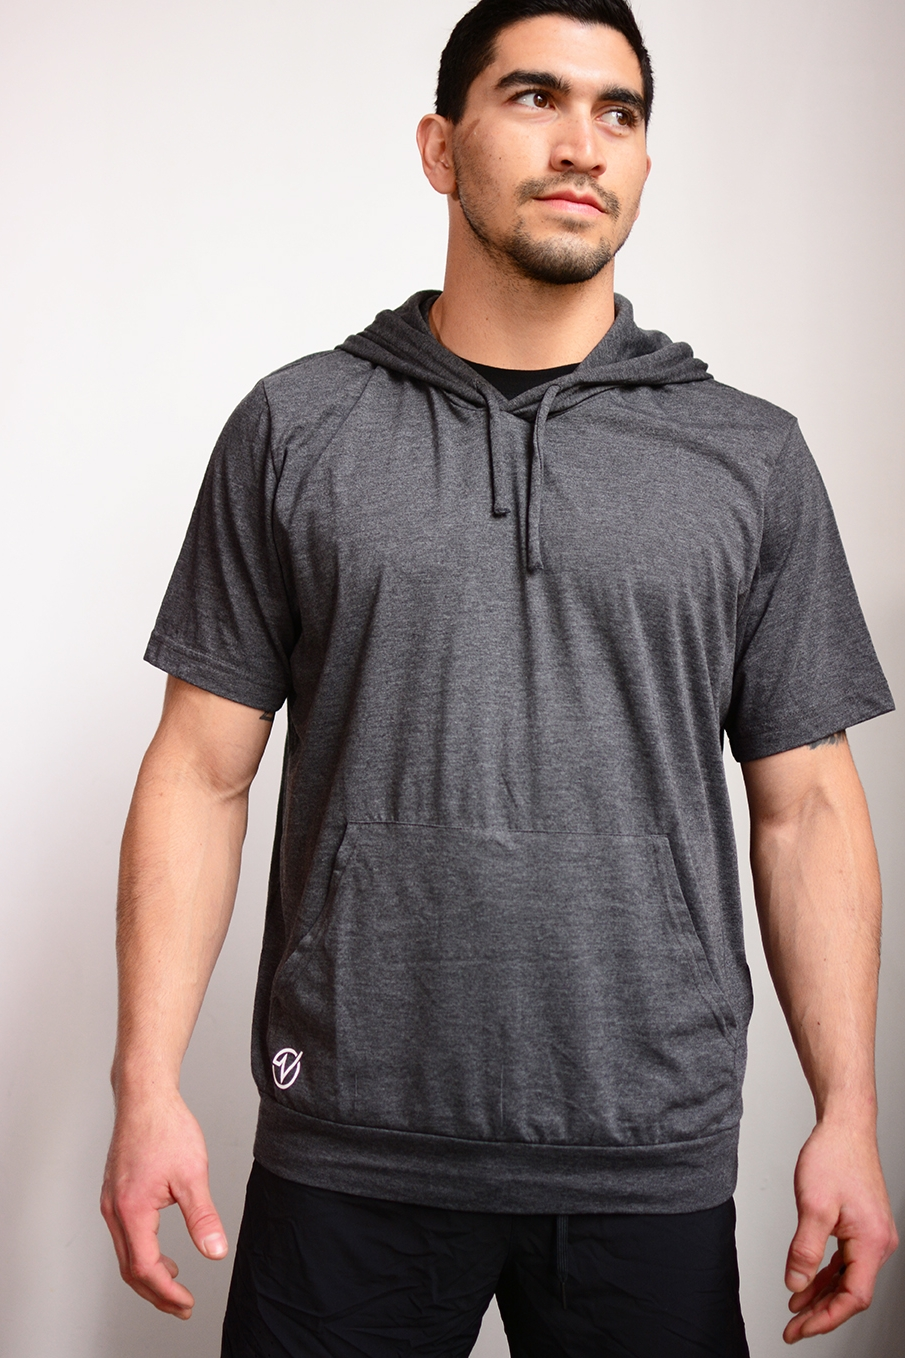 Men's Basic Short Sleeve Pullover - SKU: M3514MIN QTY 15 / Any Color - Any Size$19.80-$23.10COLORS: CharcoalSizes: M, L, XL, 2XL